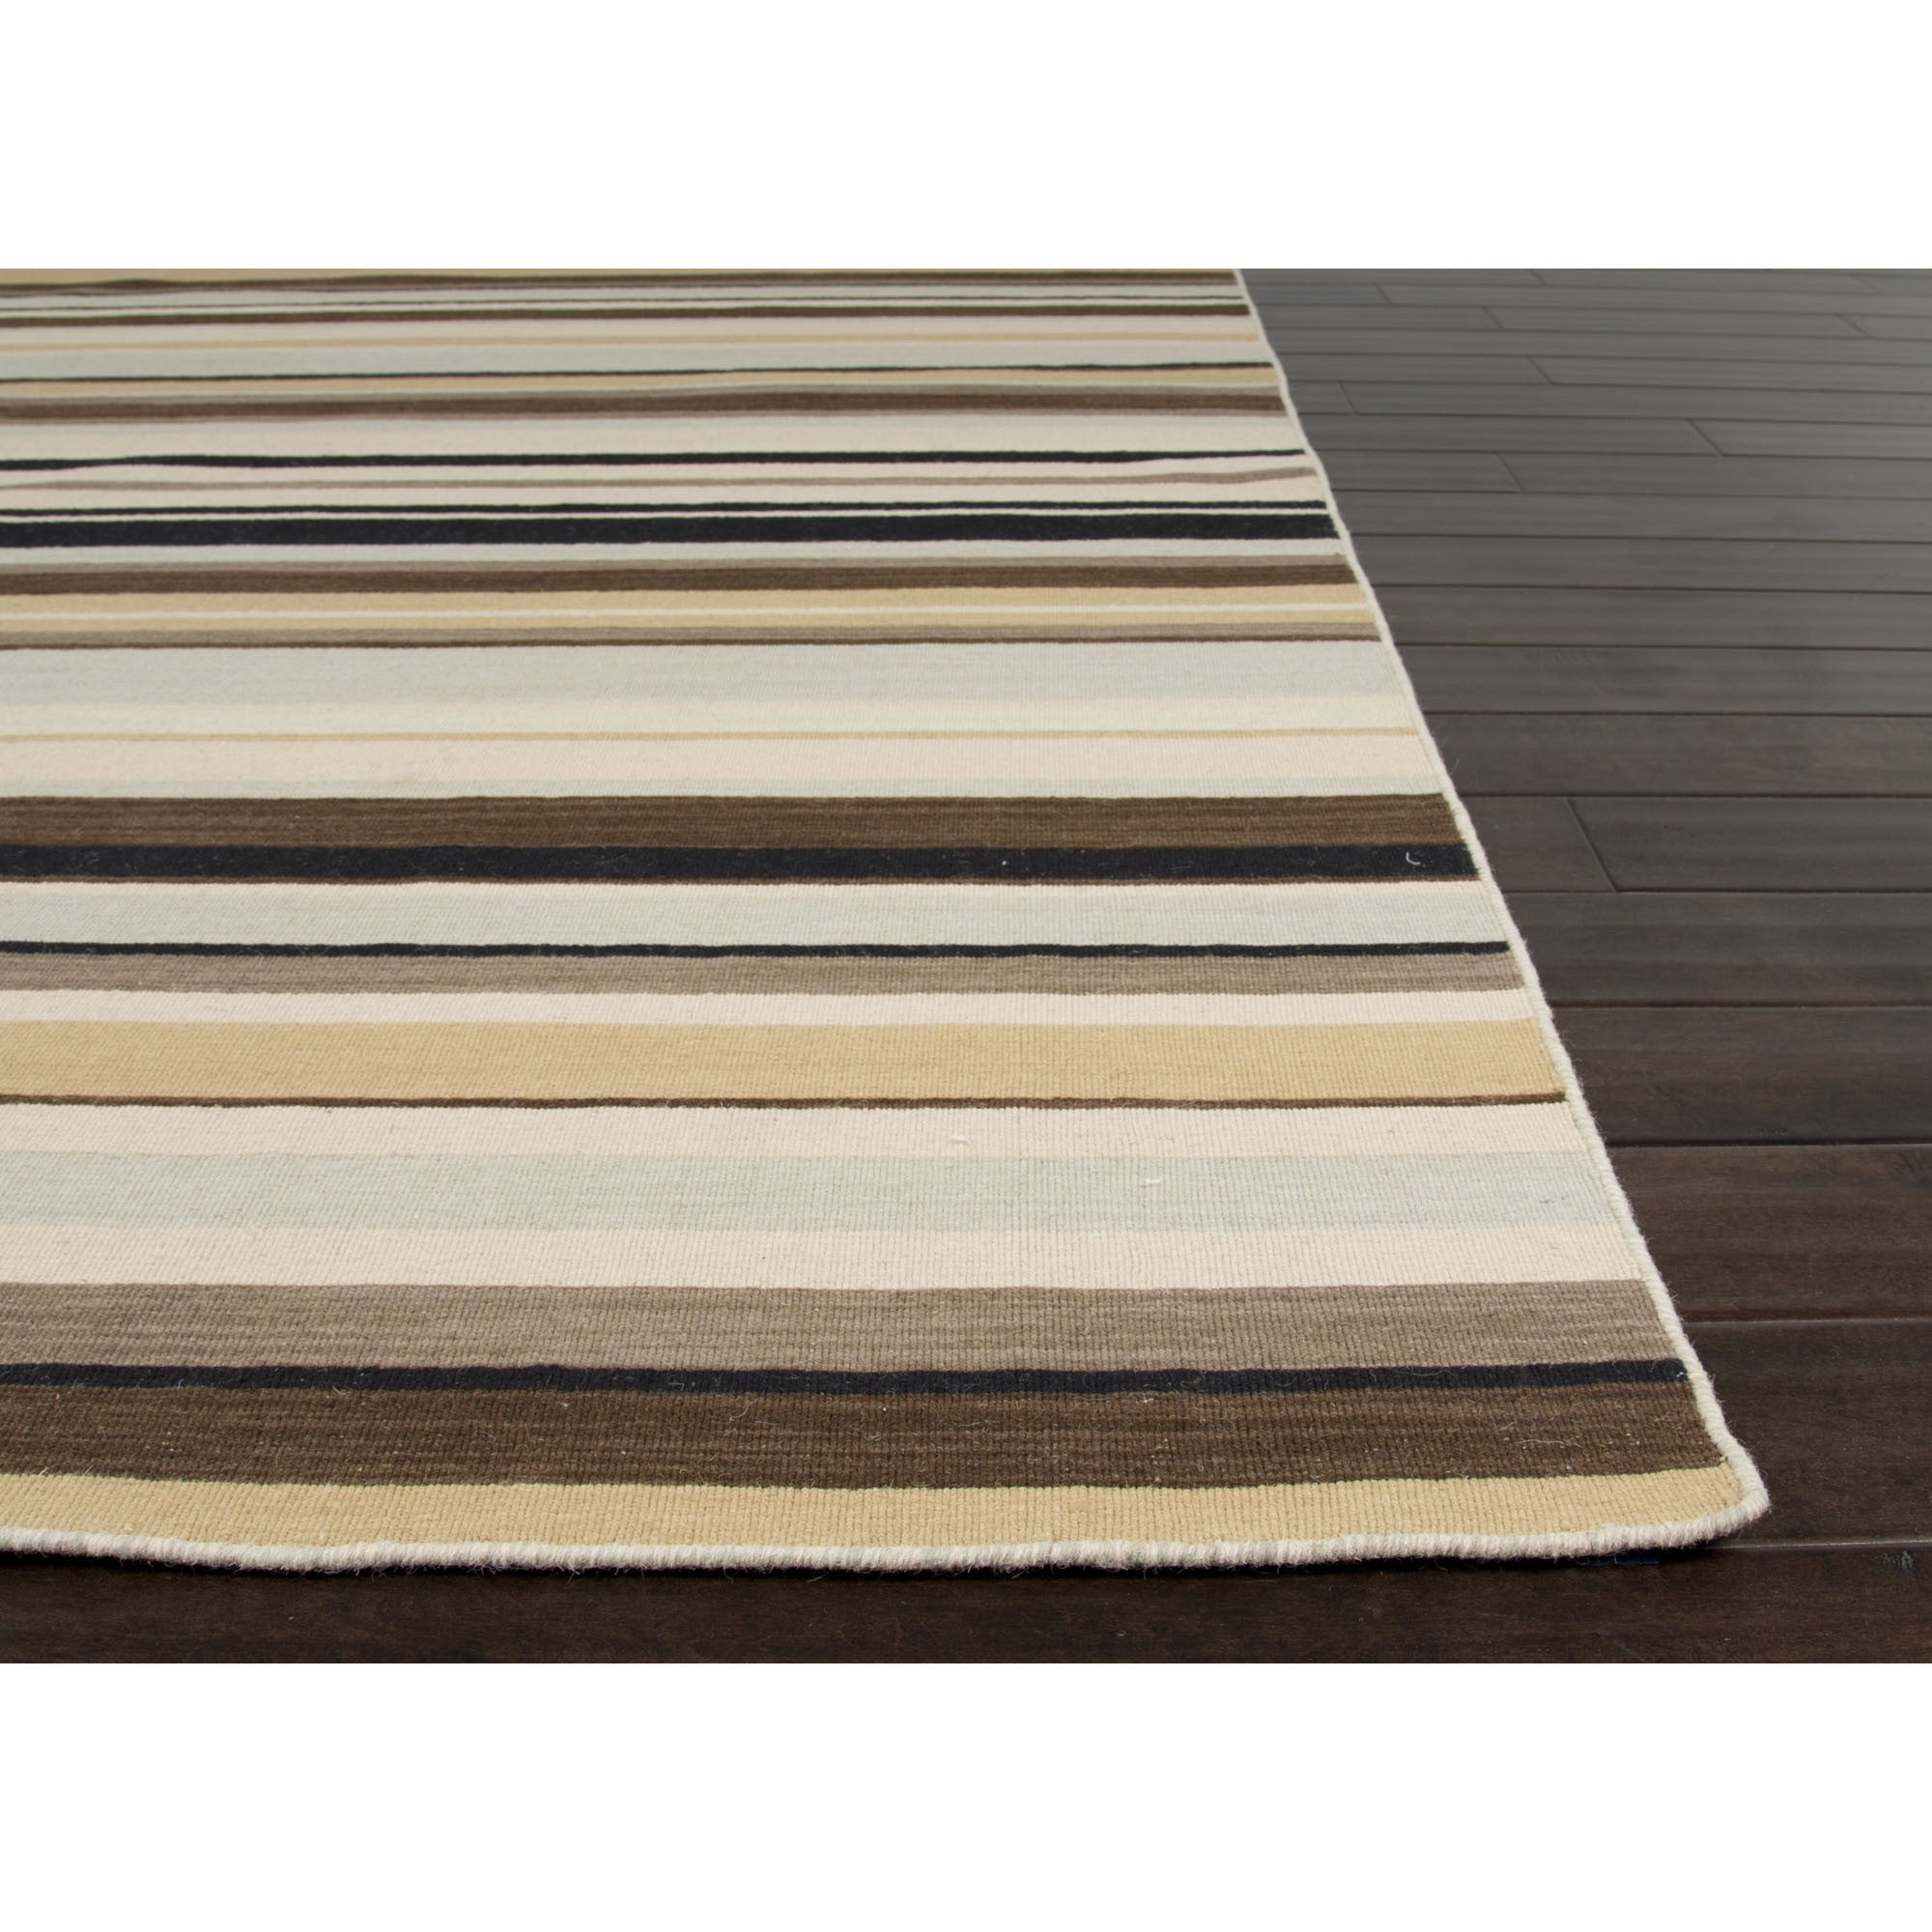 Jaipur Rugs Flatweave Stripe Pattern Ivory Brown Wool Area